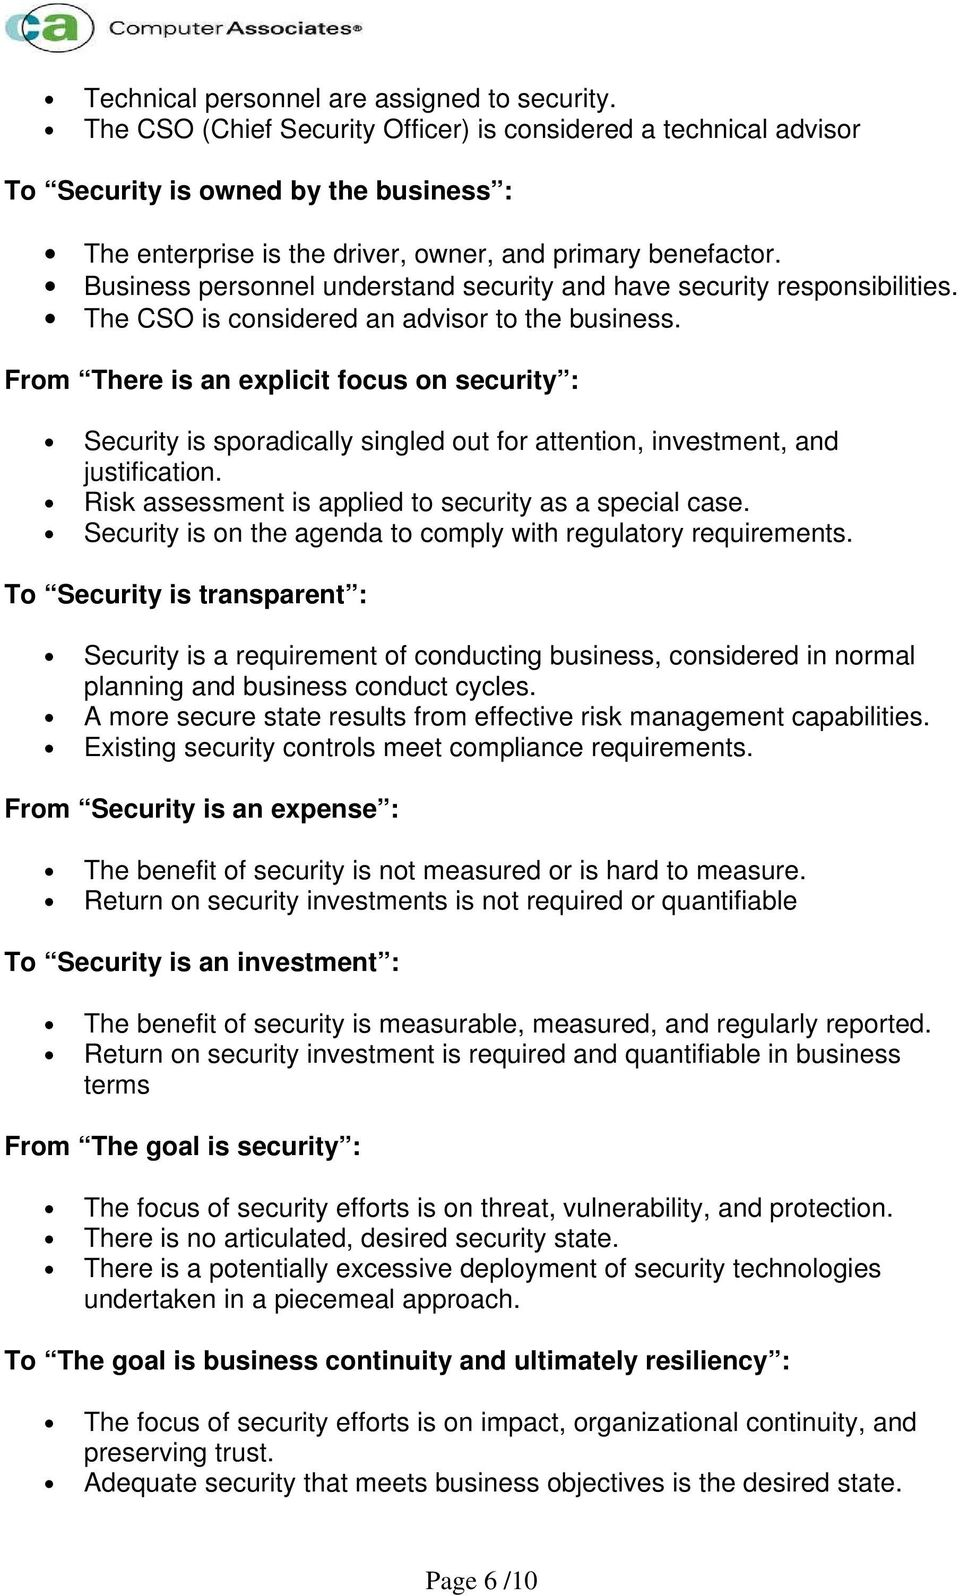 Business personnel understand security and have security responsibilities. The CSO is considered an advisor to the business.